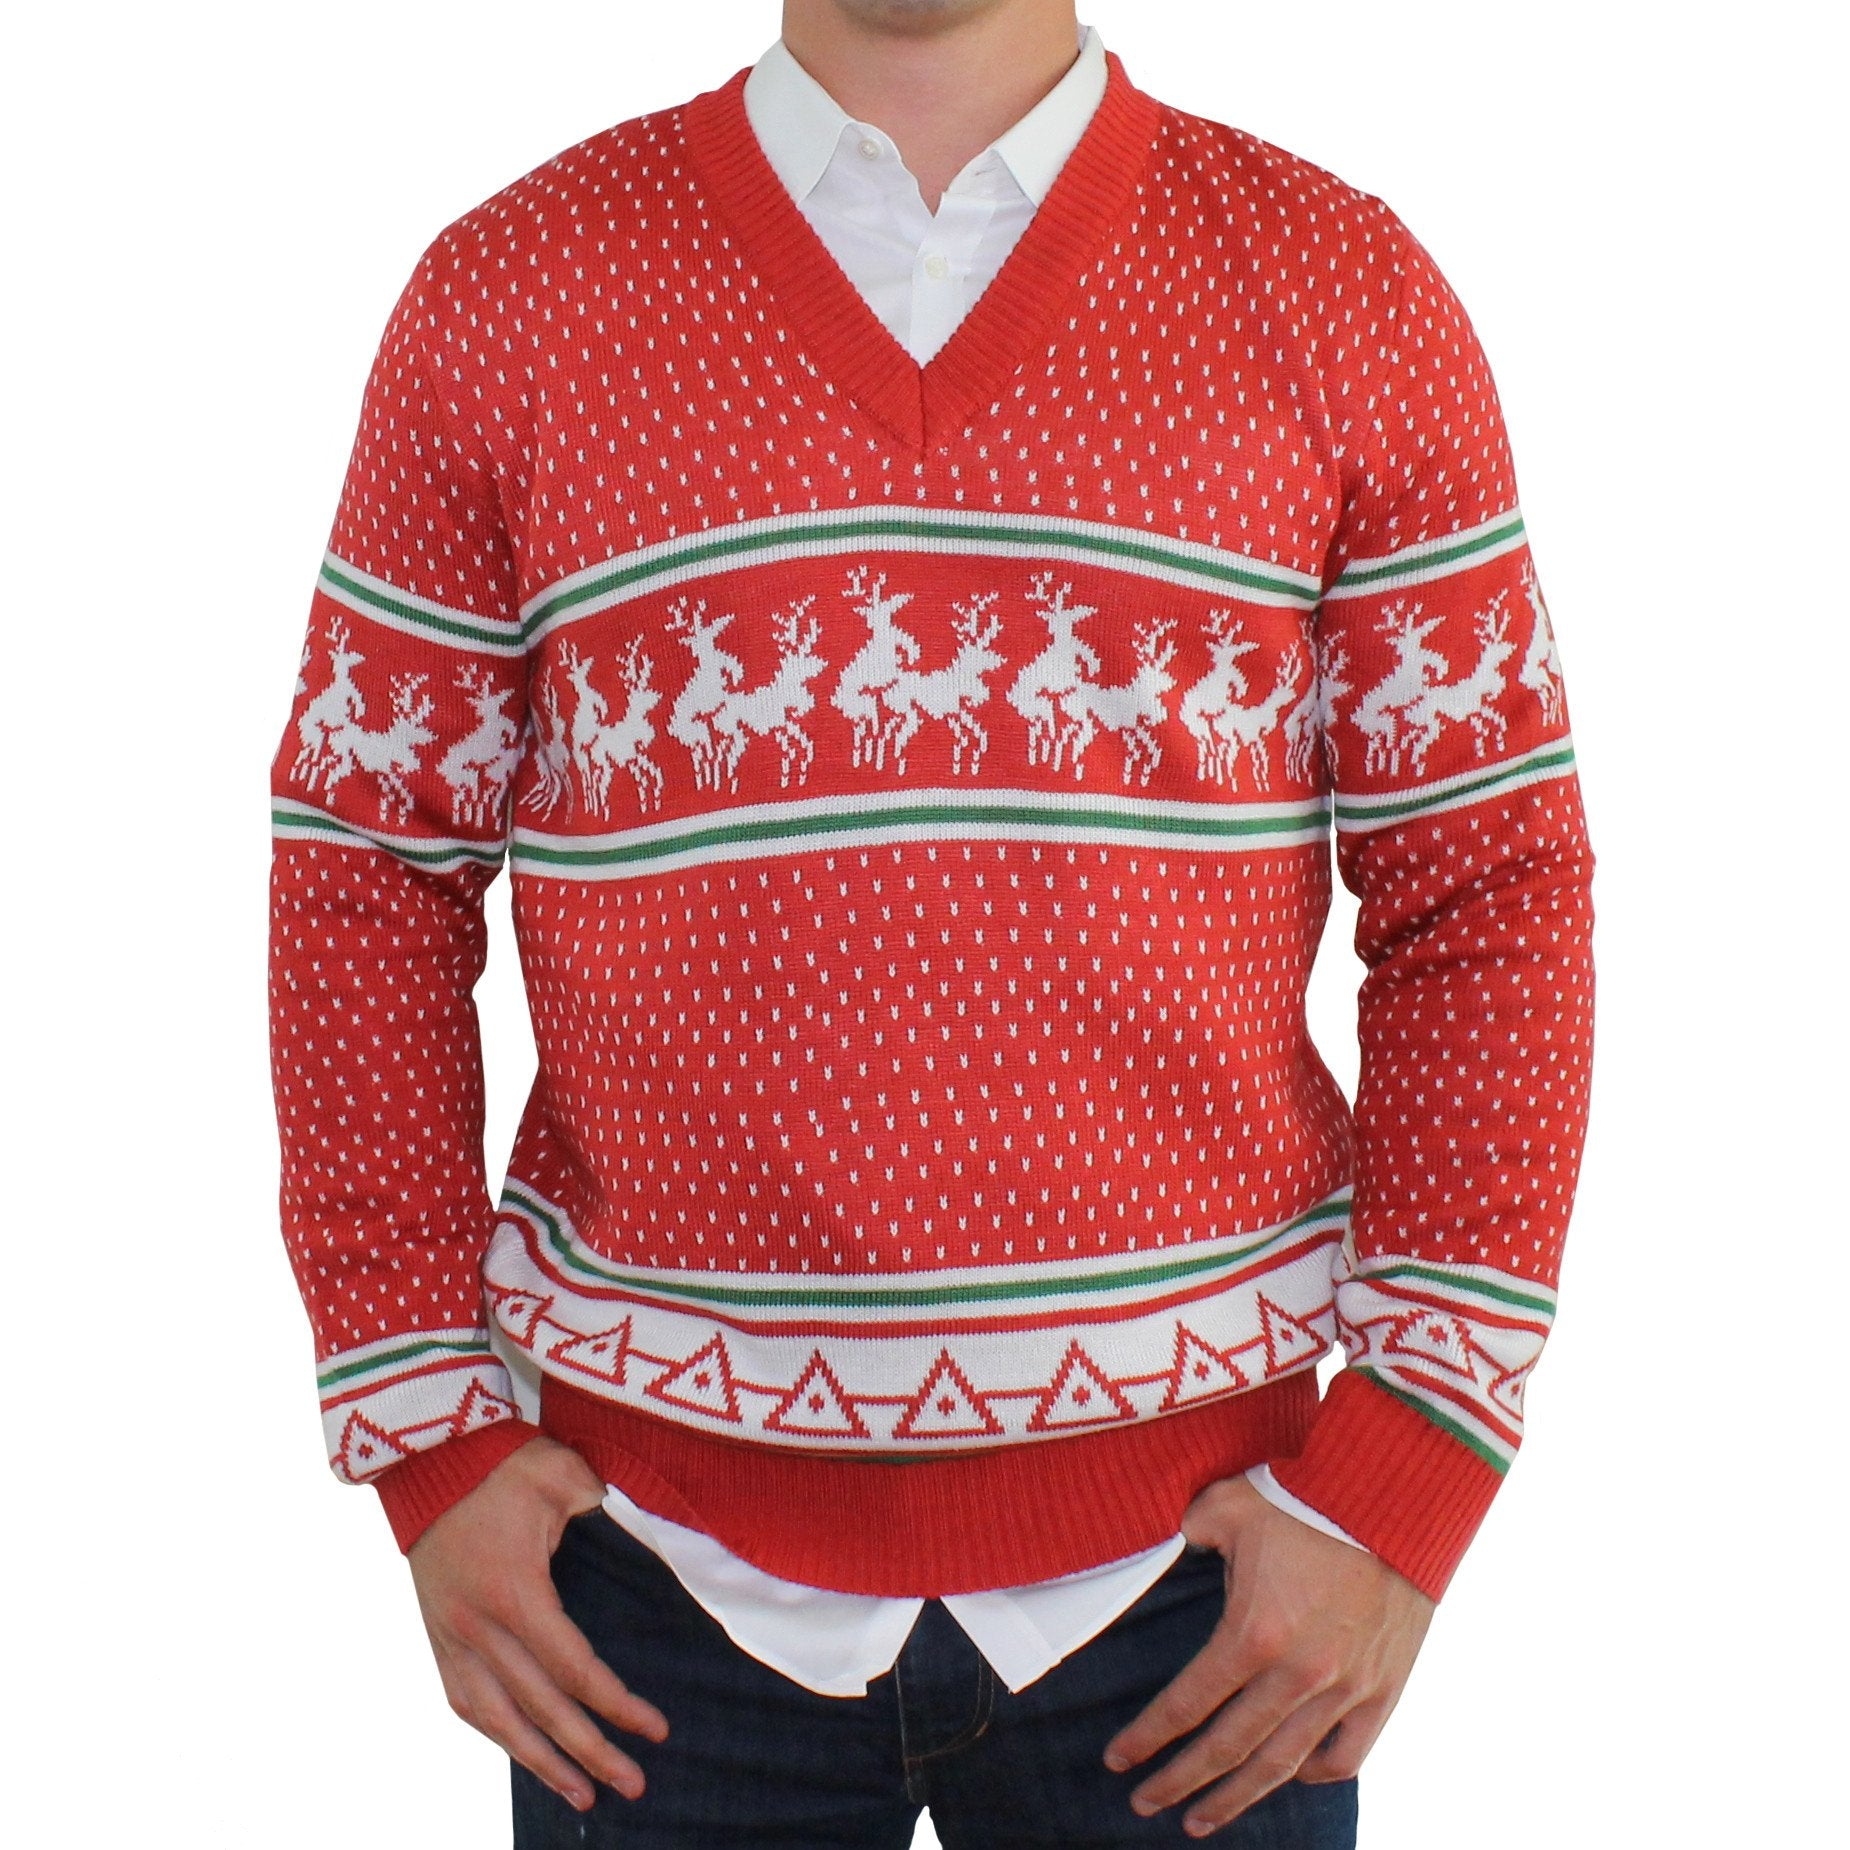 Reindeer Conga Line V-Neck Ugly Christmas Sweater Jumpers